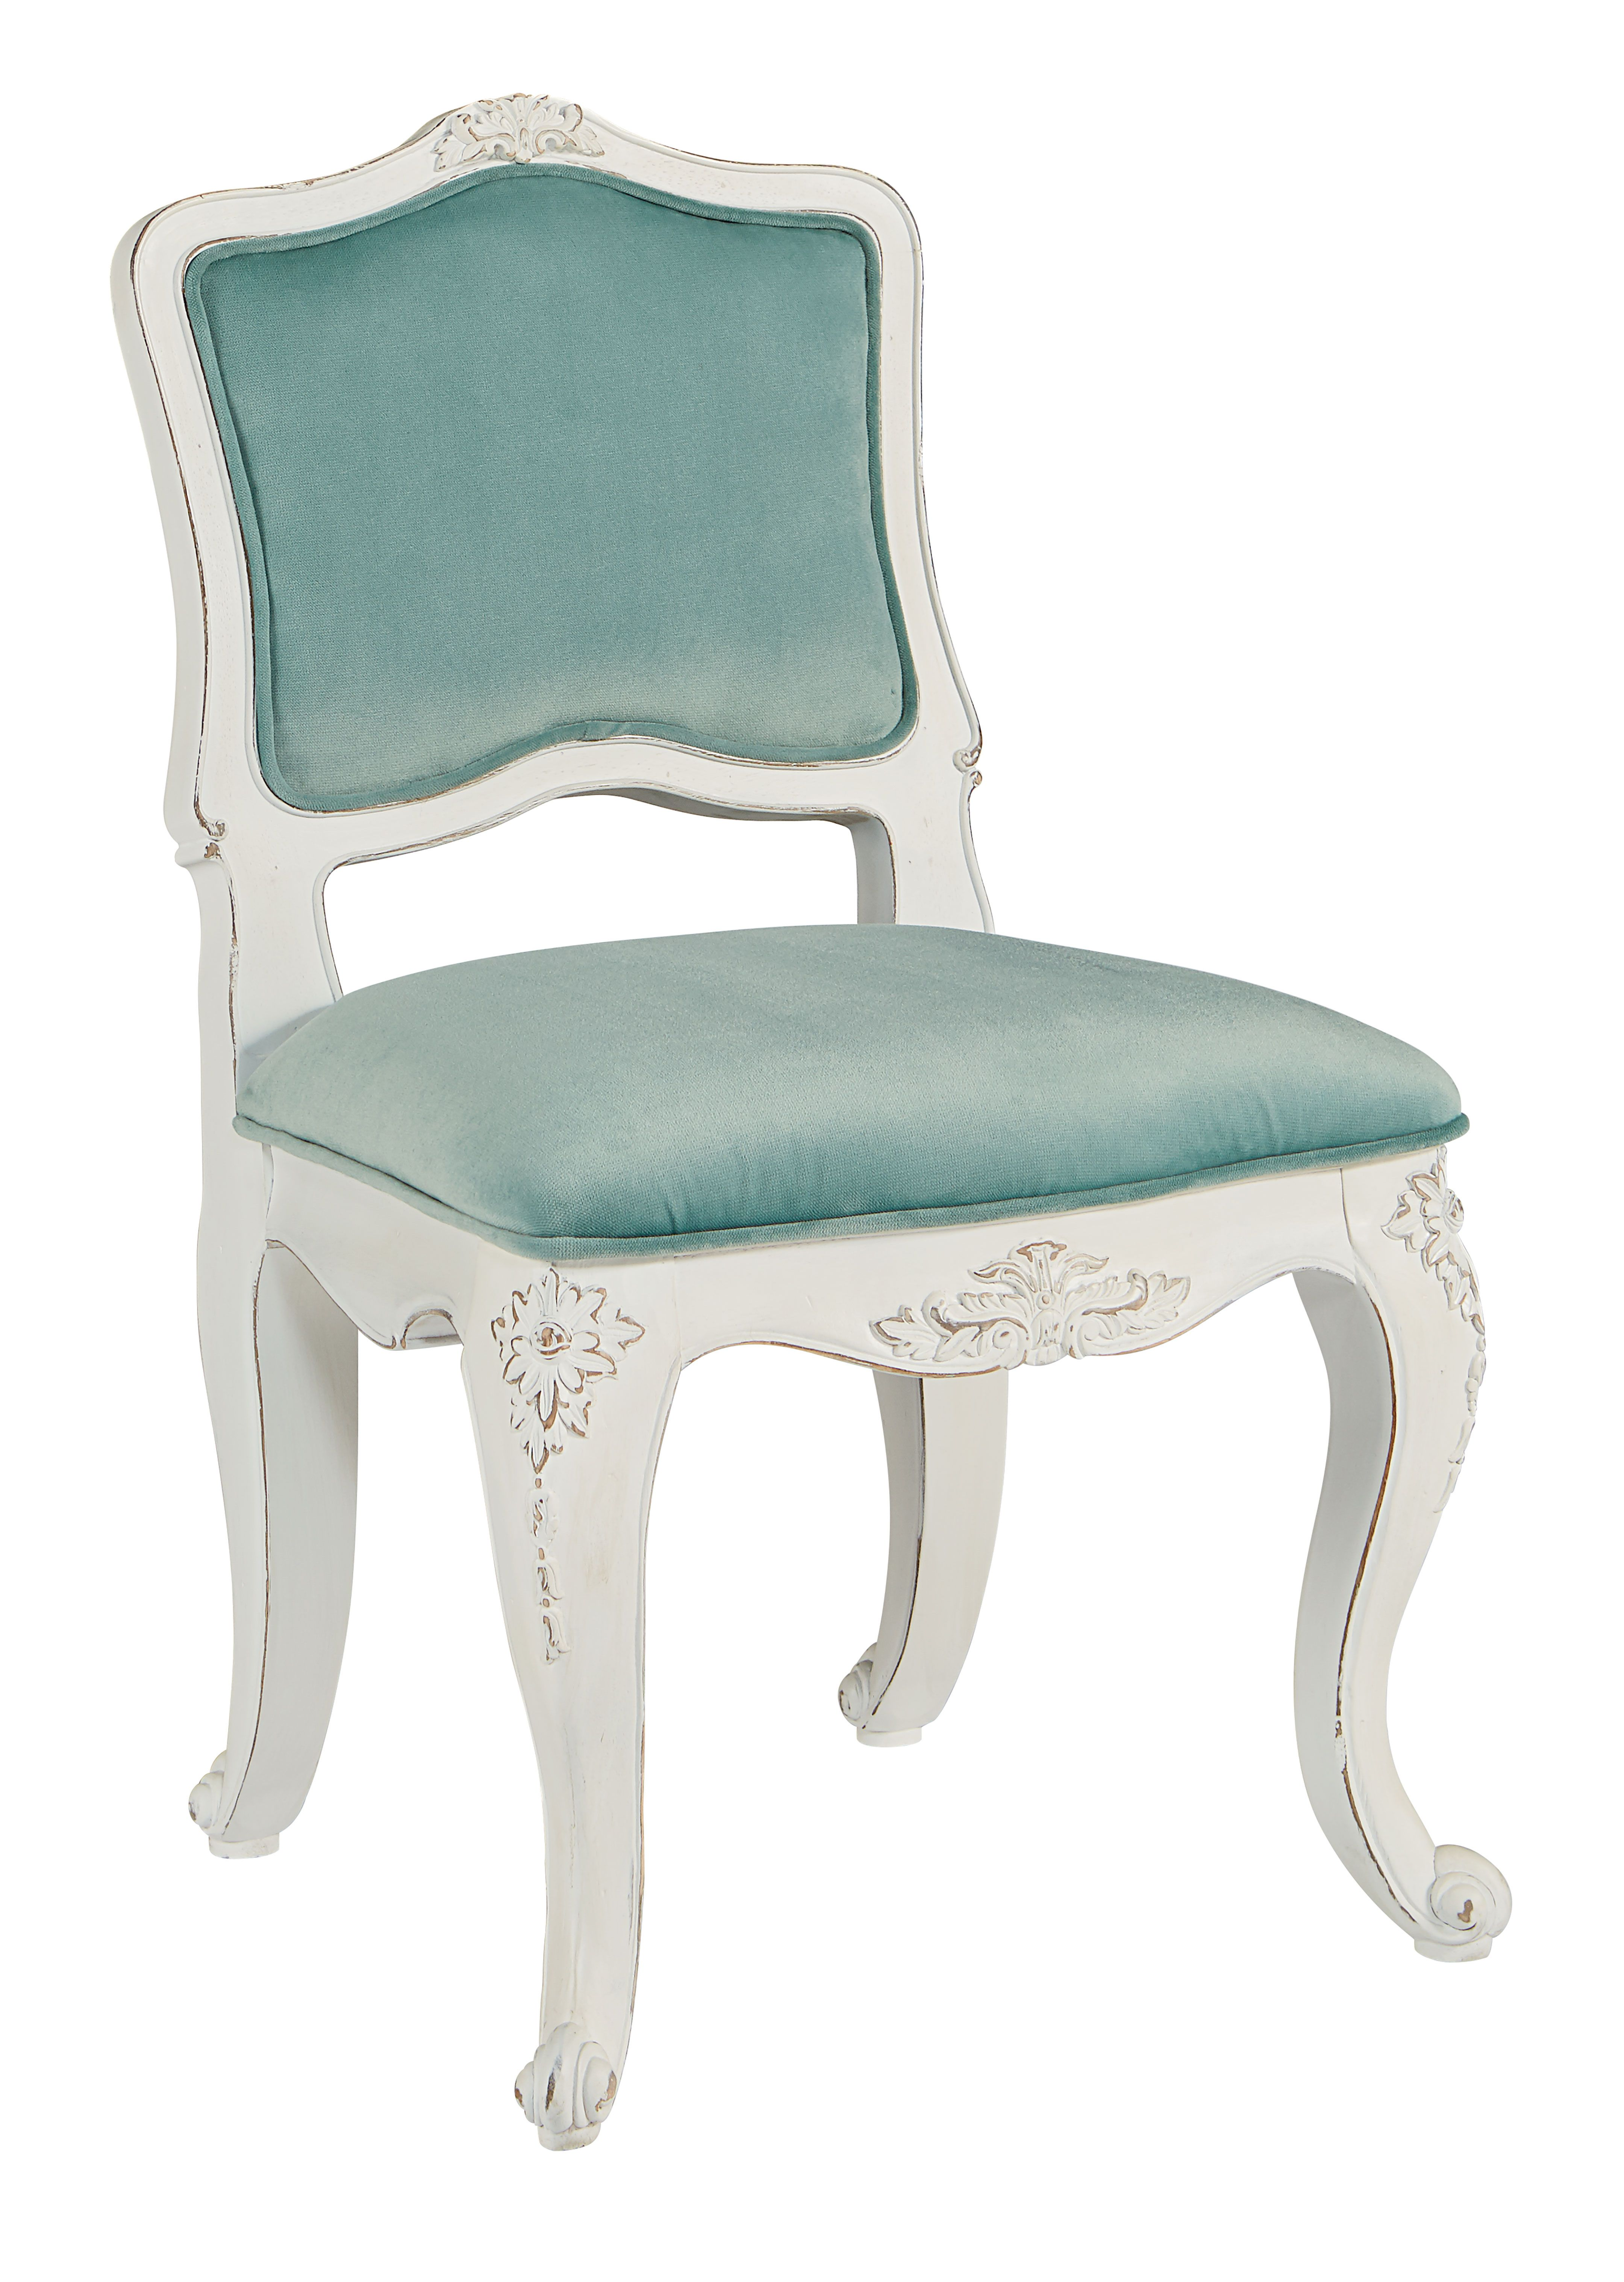 Tremendous Youth Flora Accent Chair Magnolia Home For The Home In Gmtry Best Dining Table And Chair Ideas Images Gmtryco